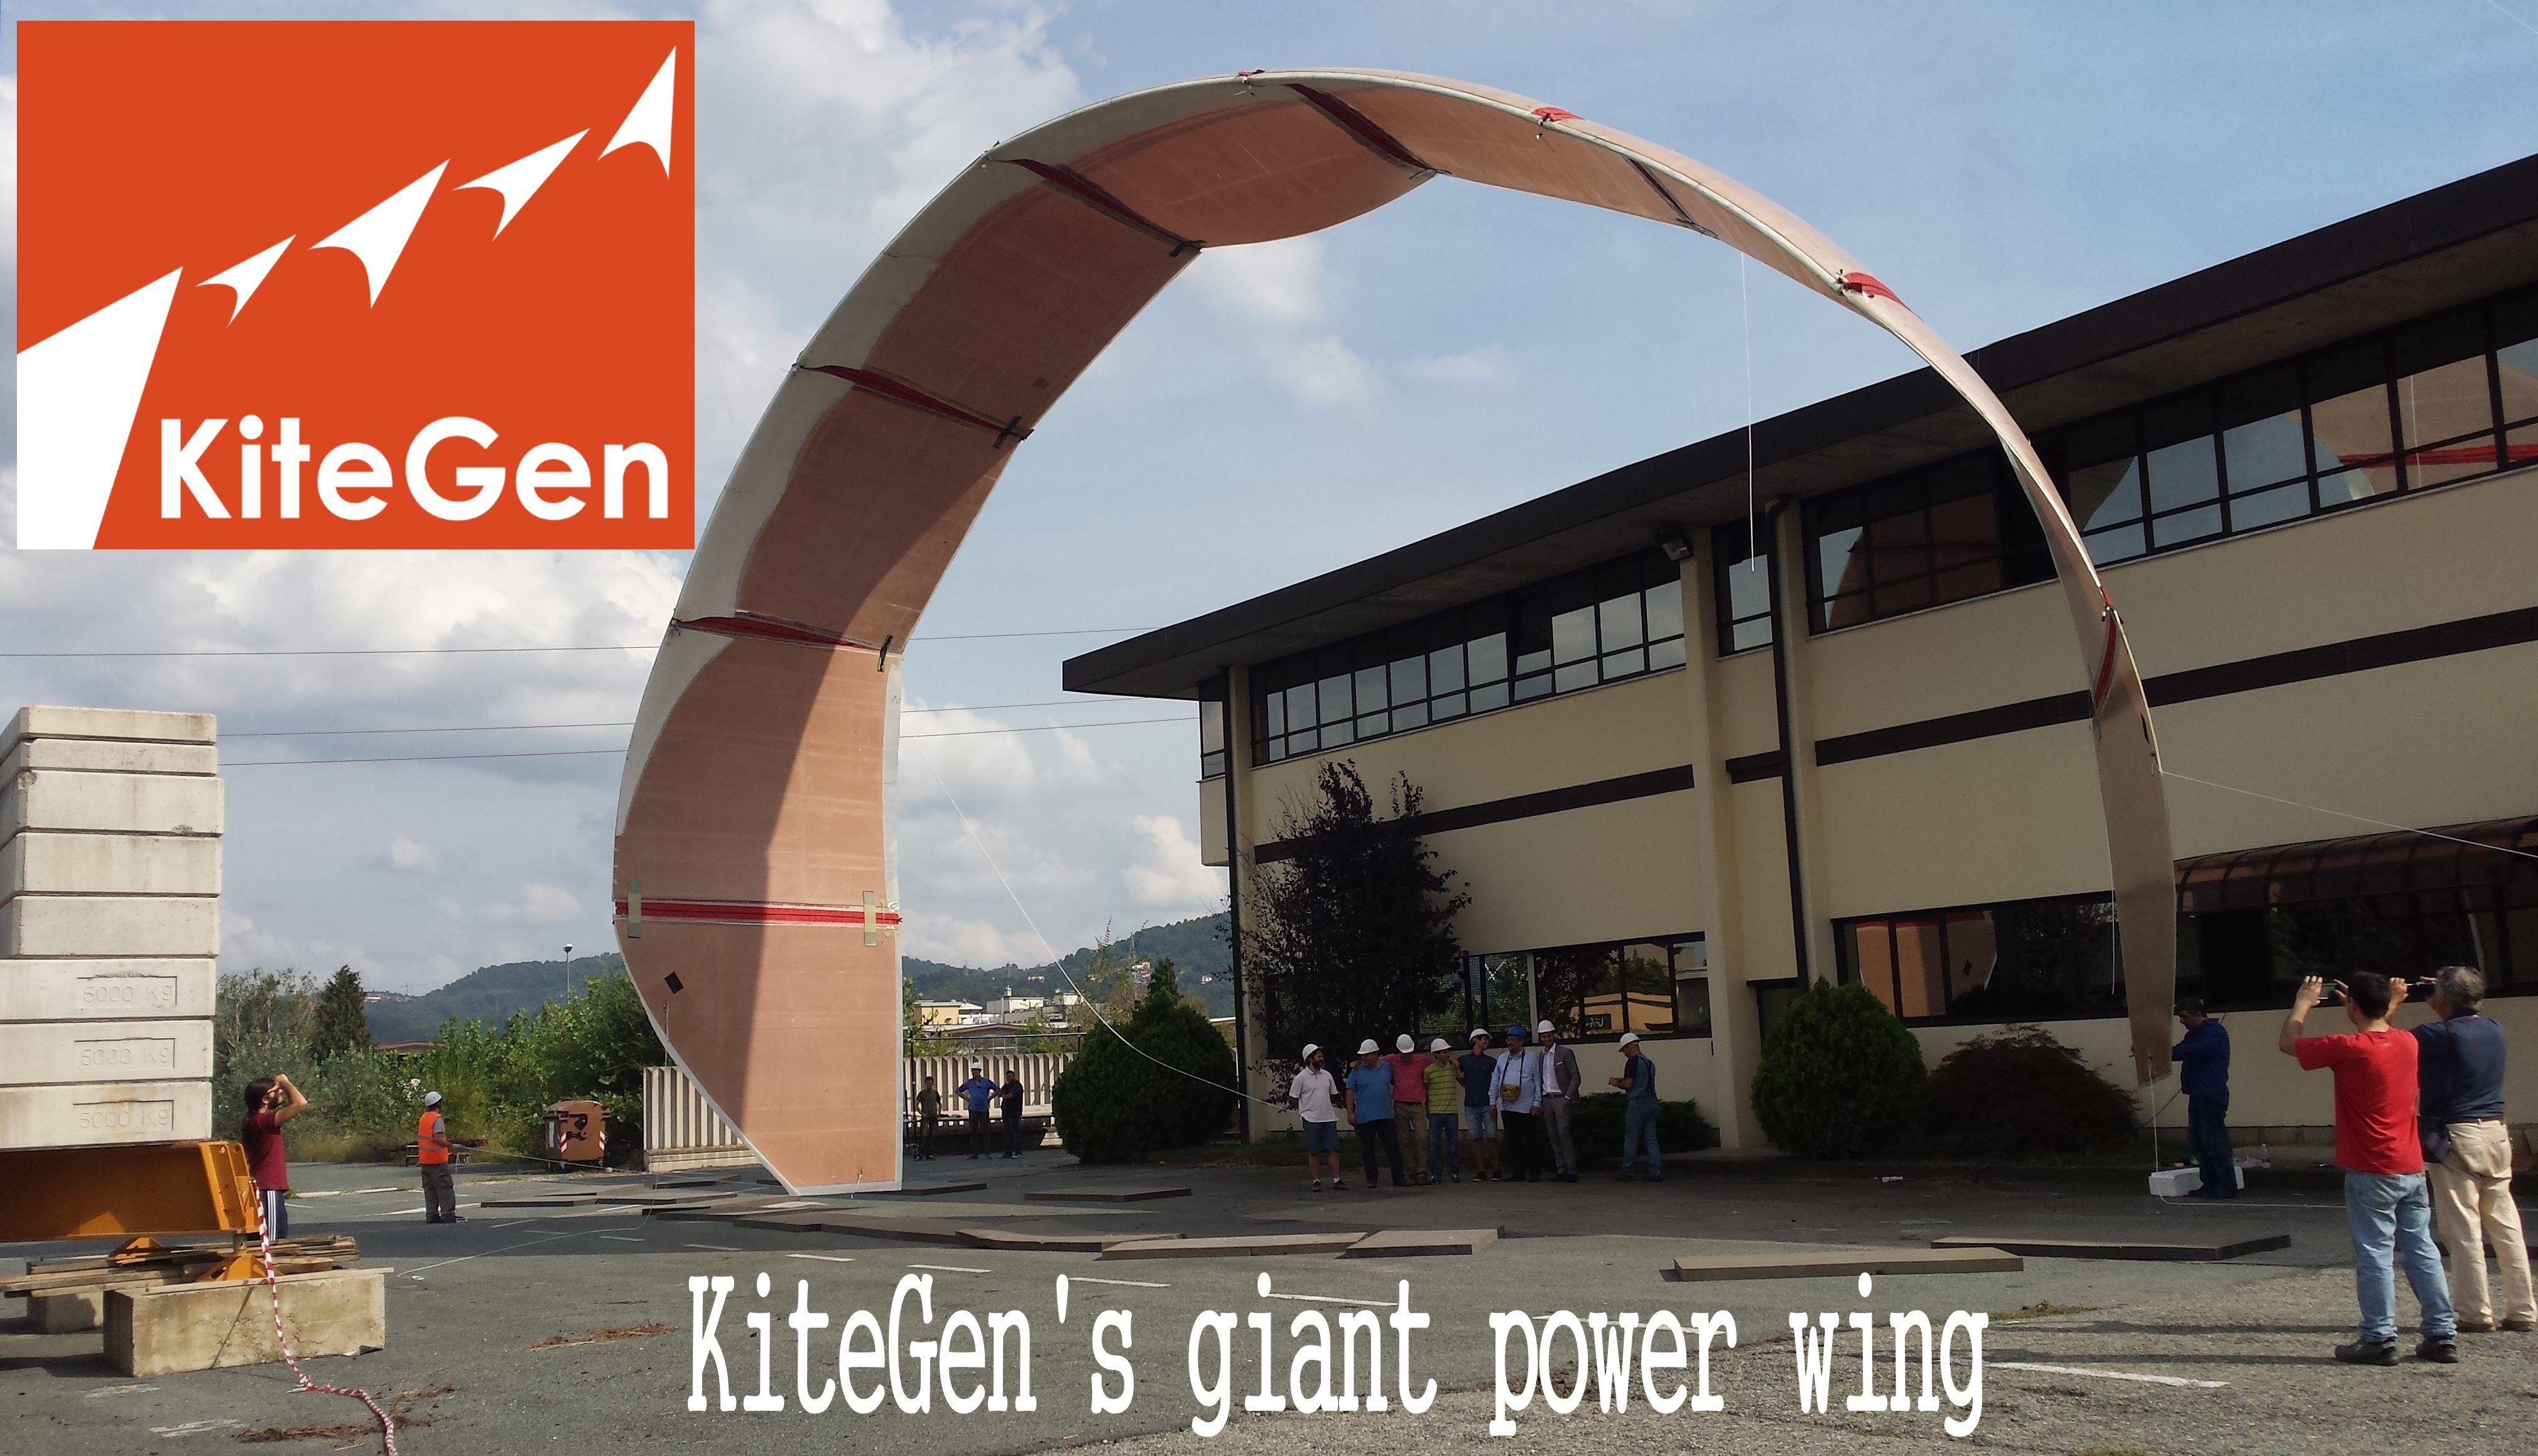 Kitegen Research Wind Turbines For Electricity Generation Come In All Sizes And They The Availability